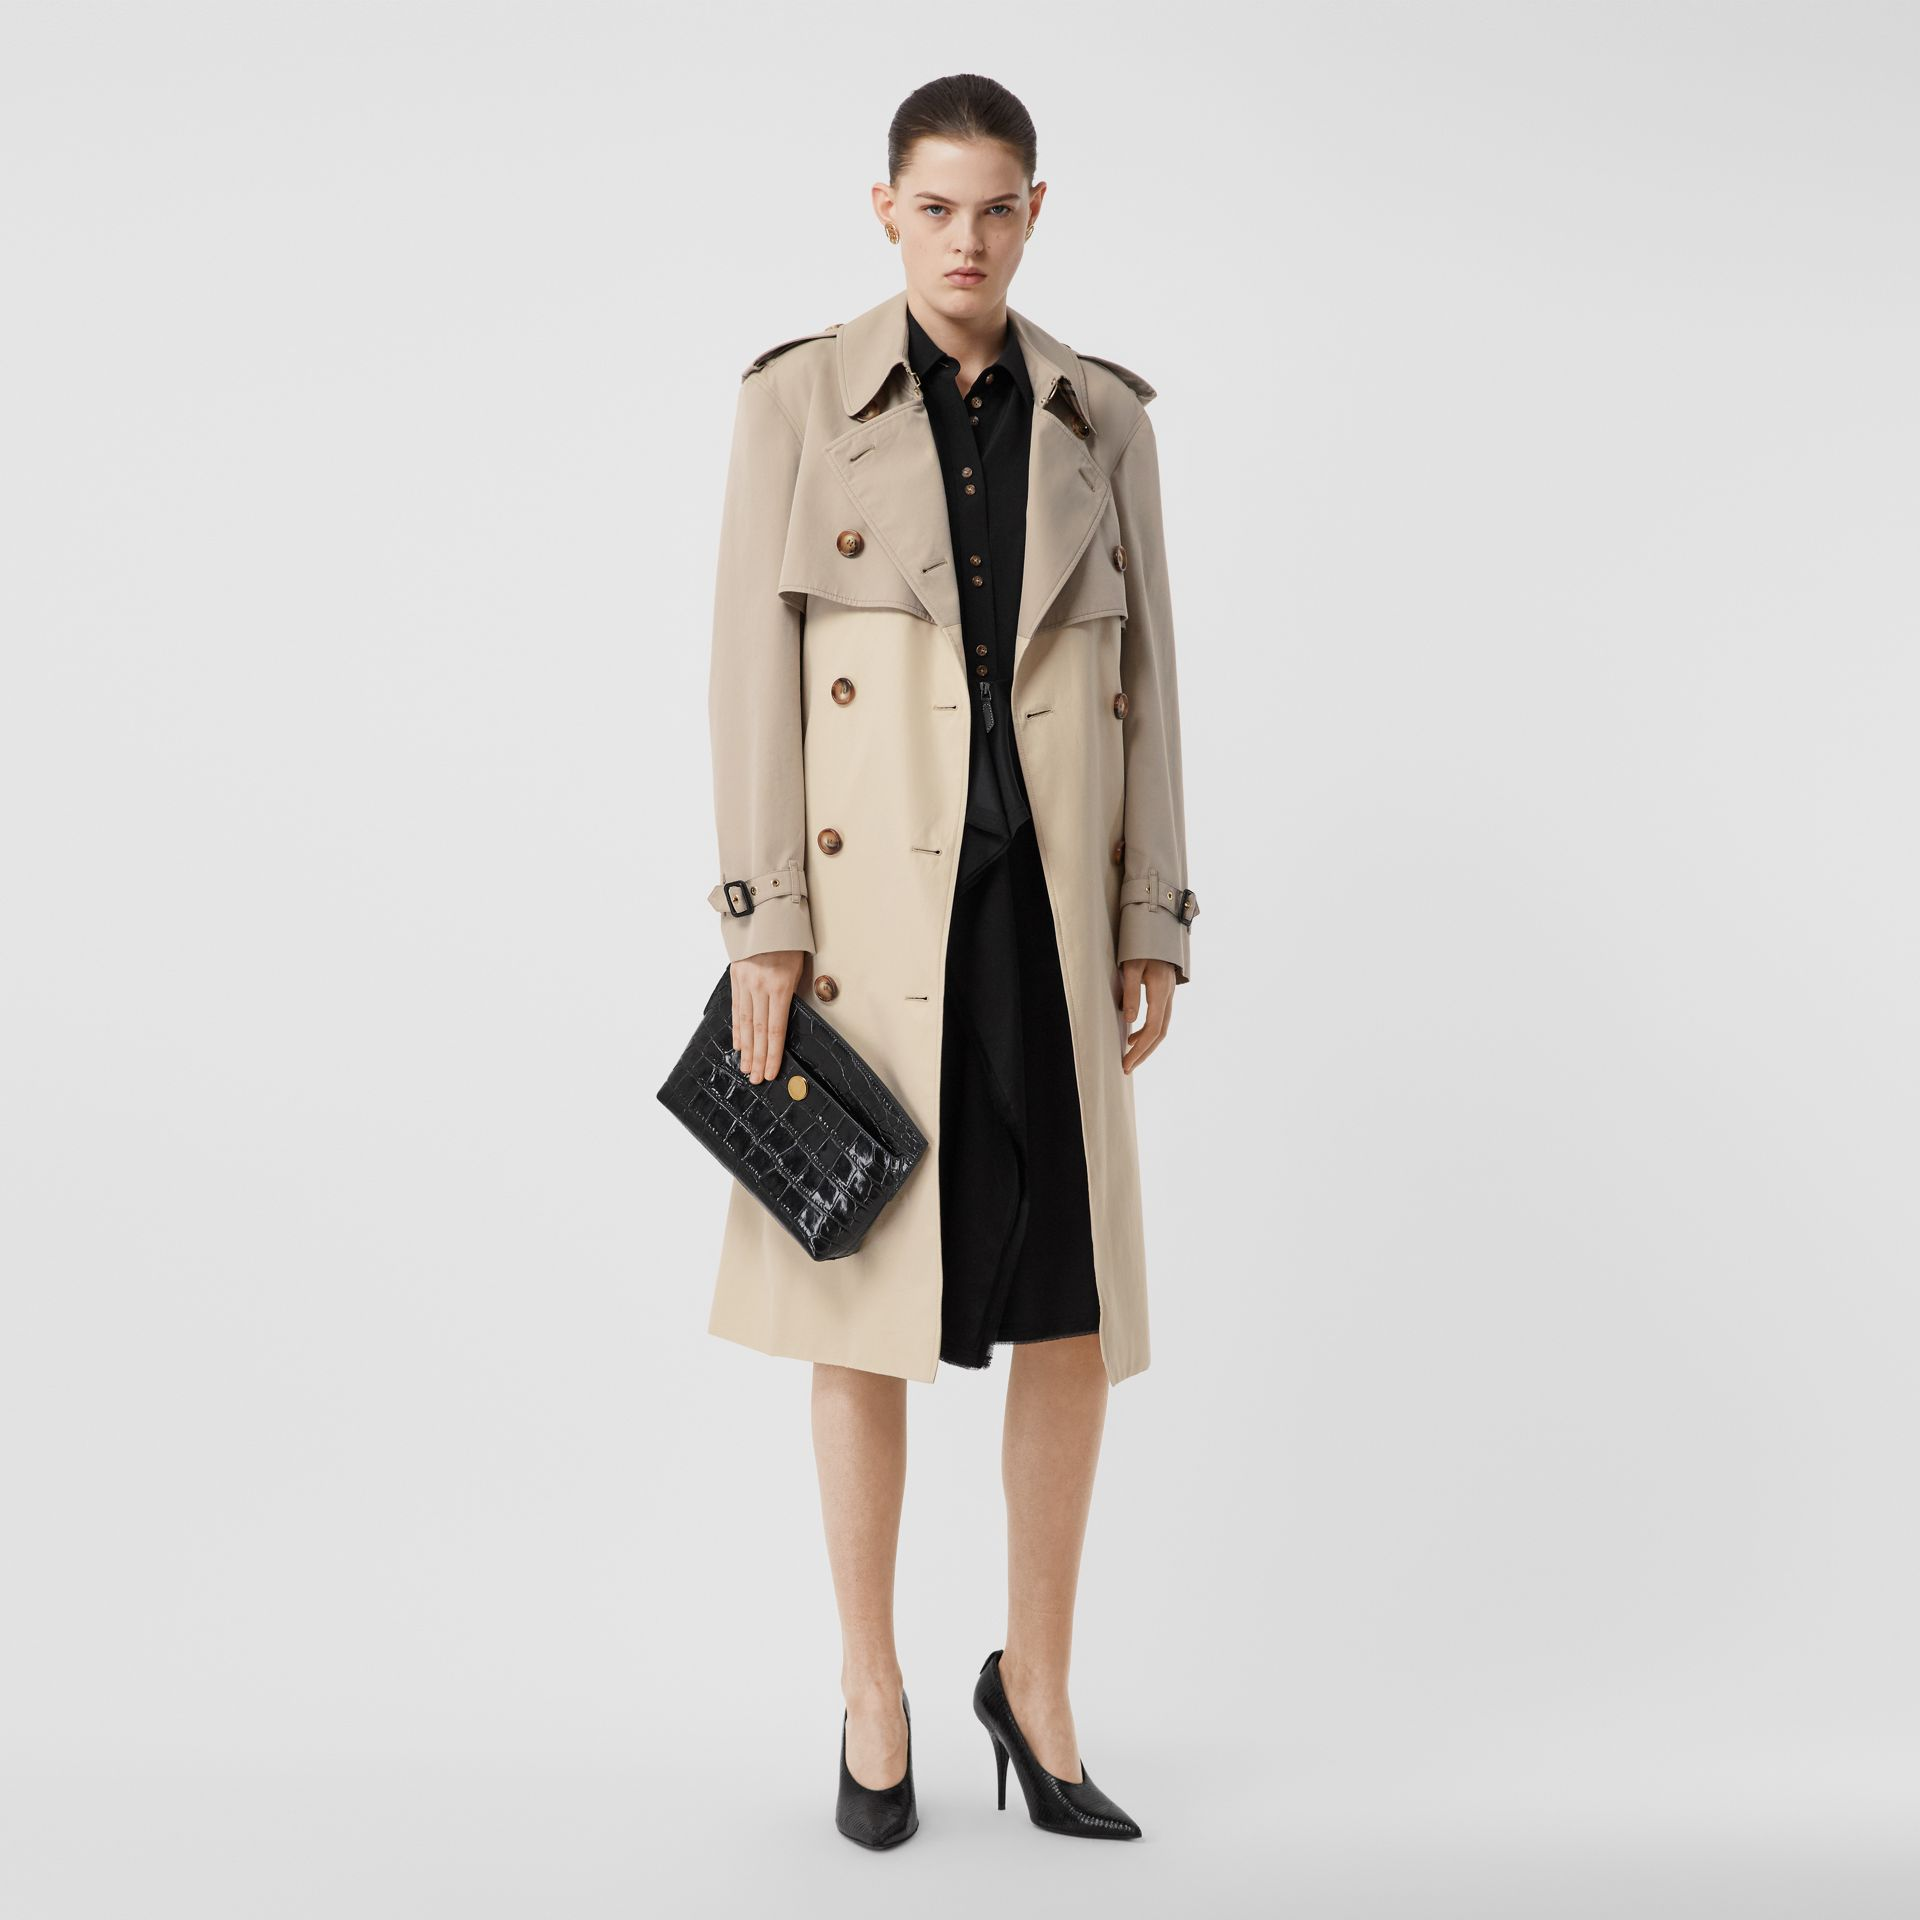 Two-tone Reconstructed Trench Coat in Light Sand - Women | Burberry Hong Kong S.A.R - gallery image 5